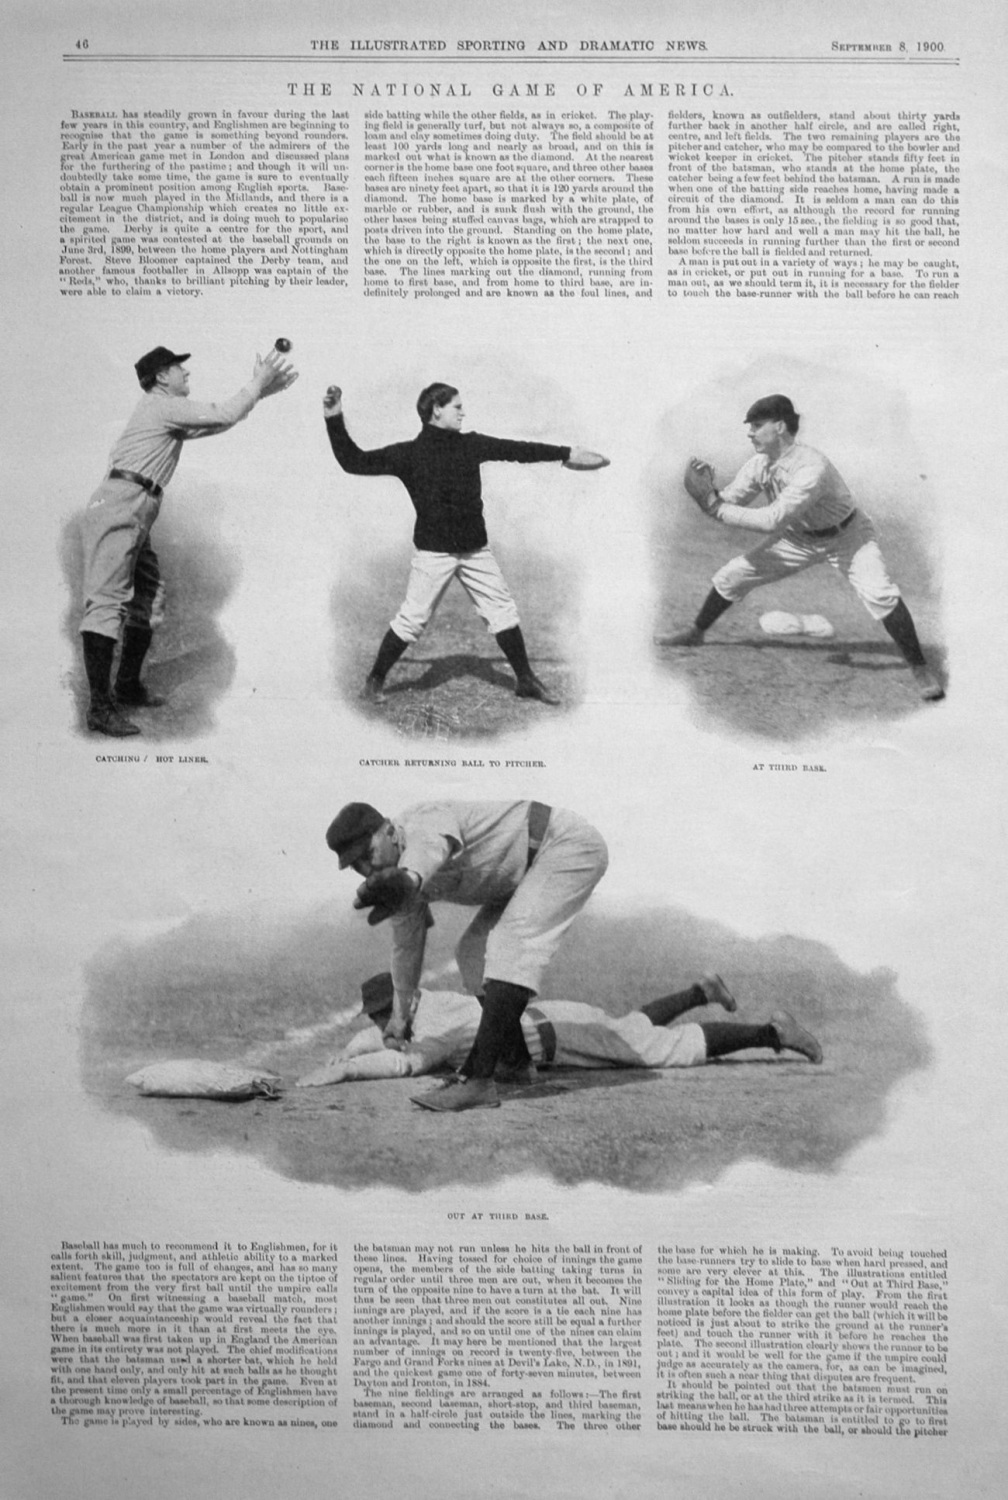 The National Game of America. 1900.